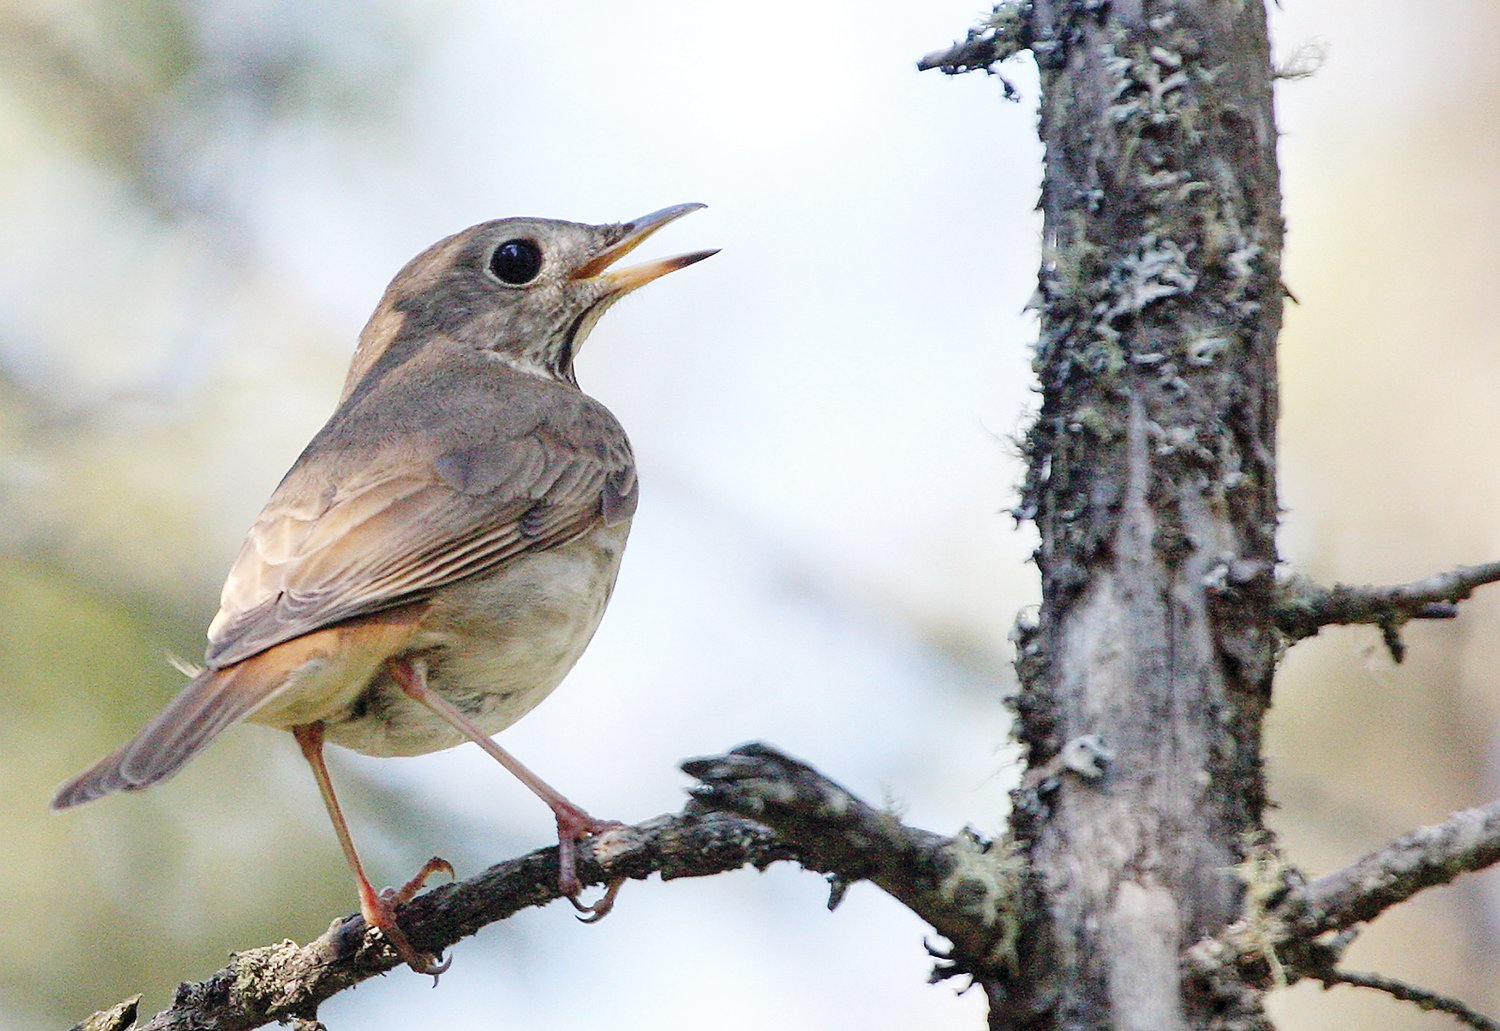 The large eyes of the hermit thrush help this bird see in low light conditions, which is when it prefers to sing 